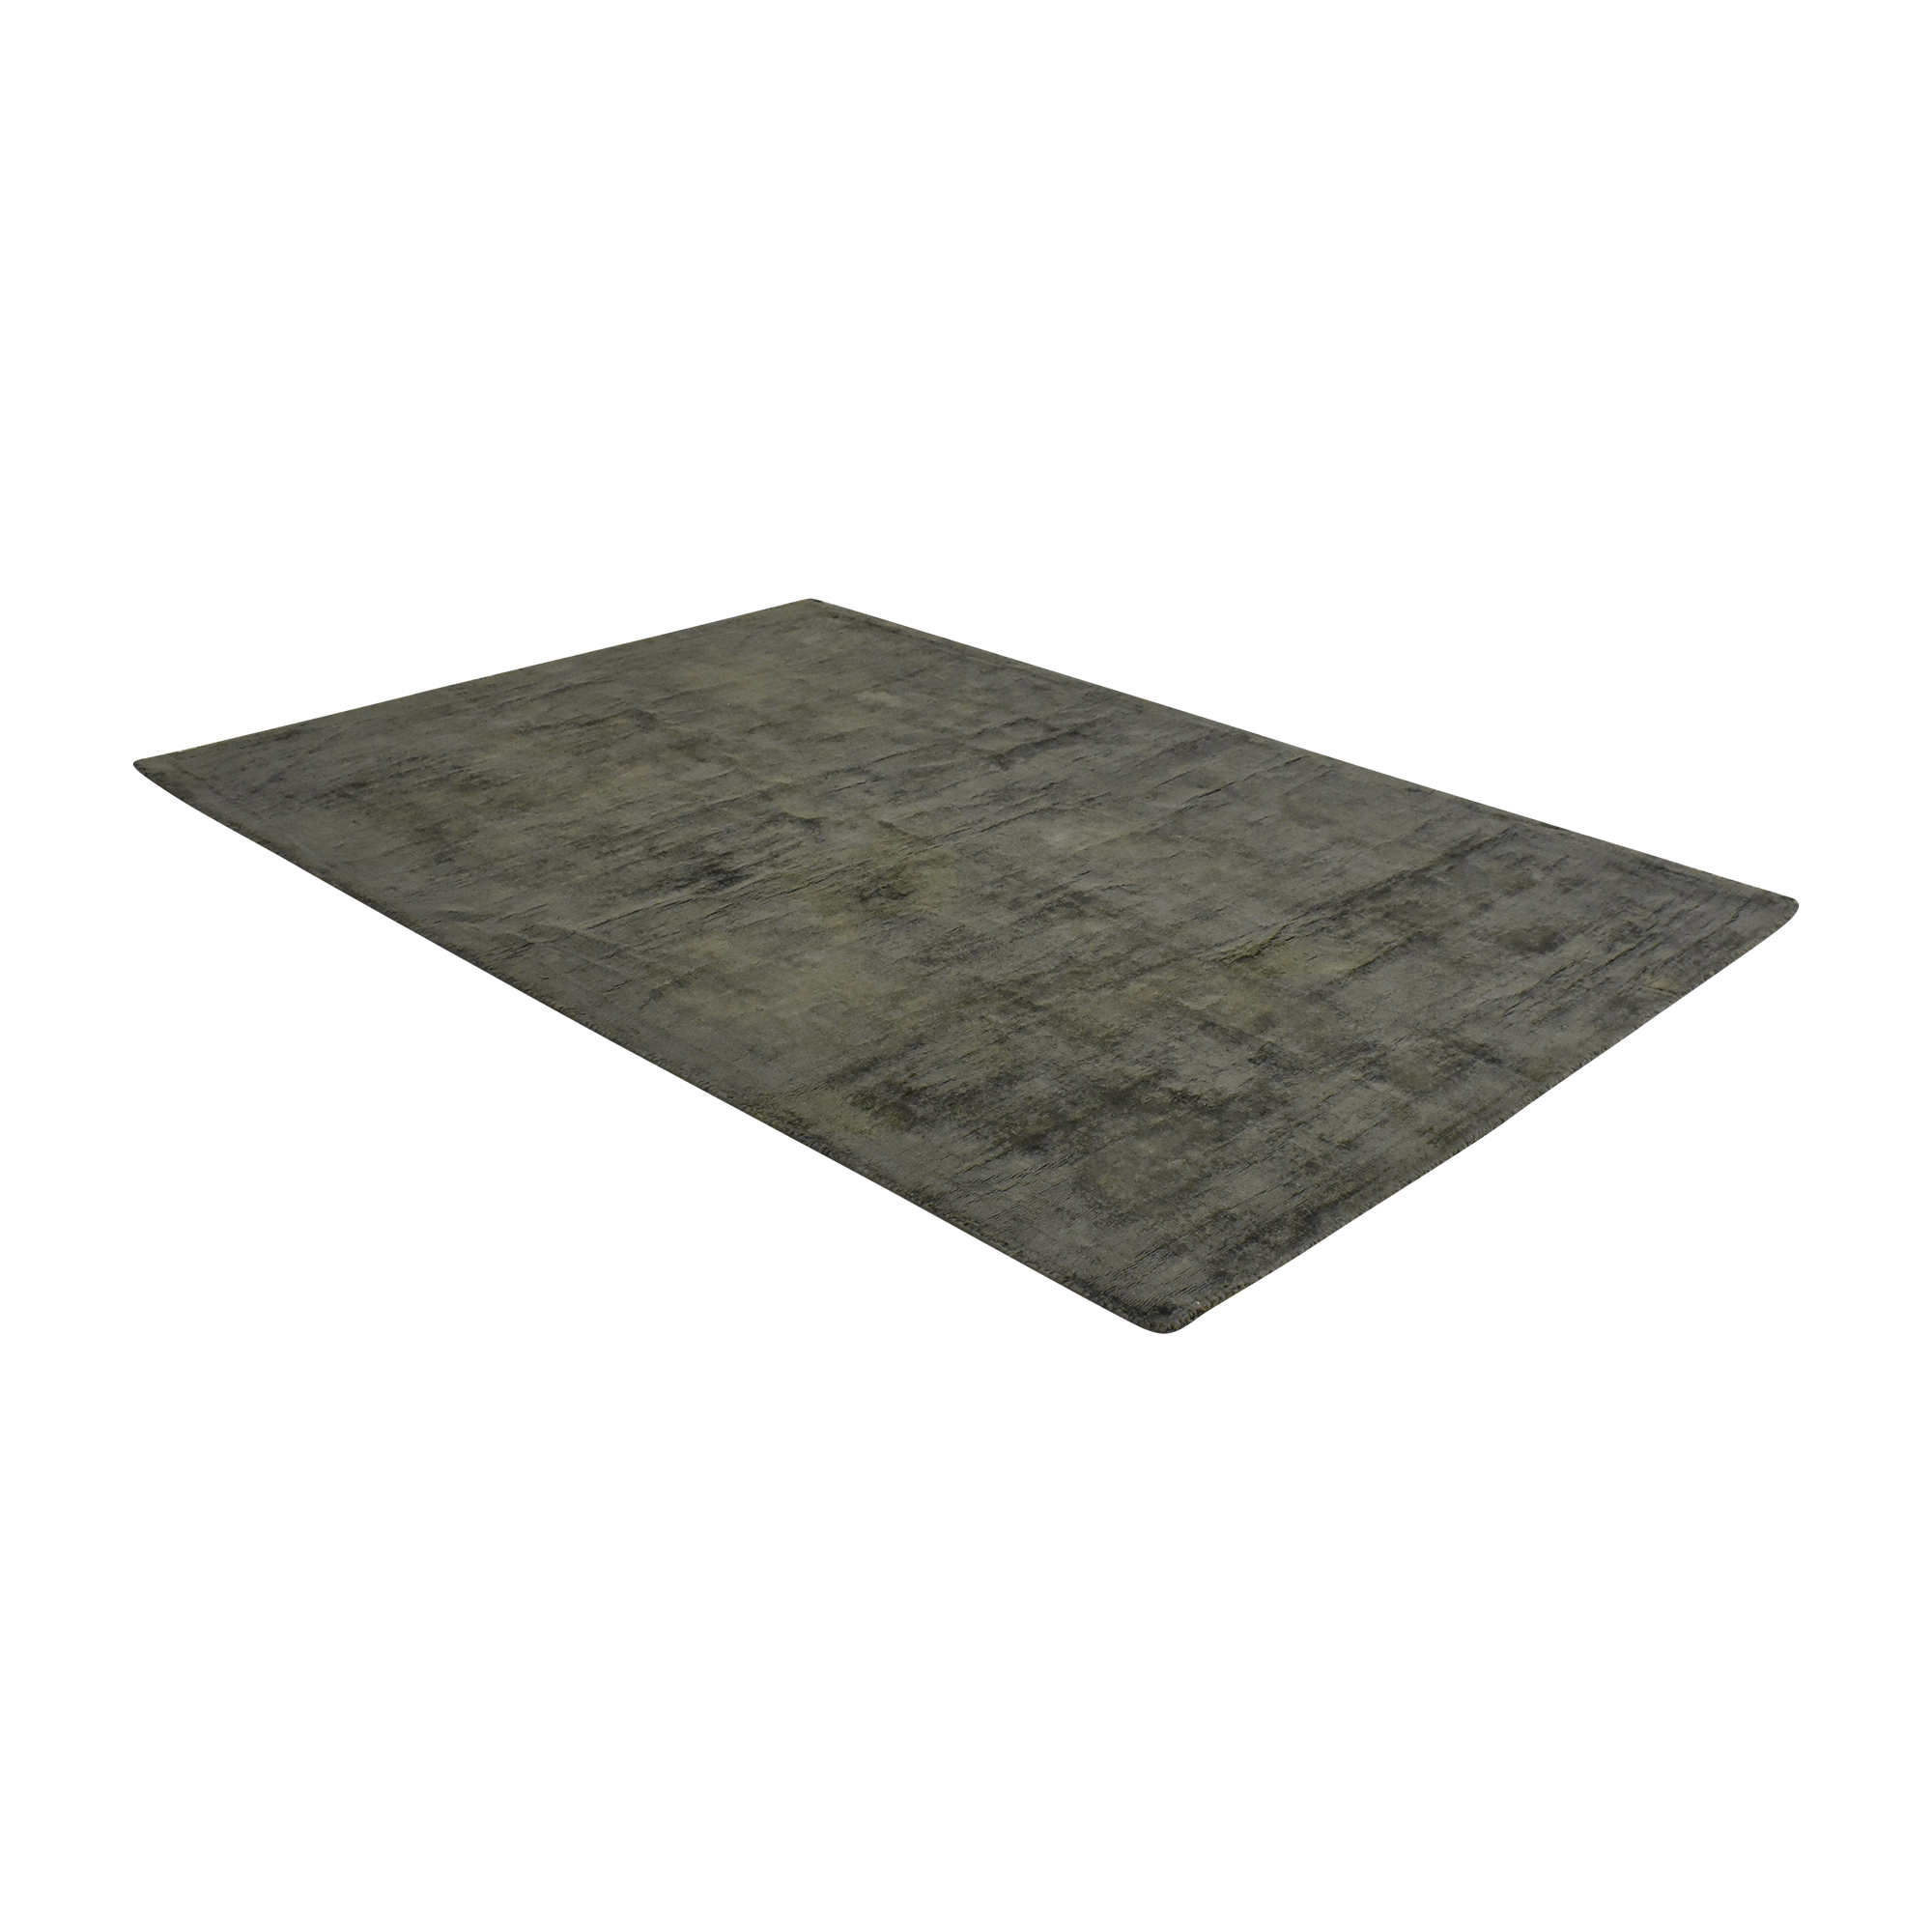 Foreign Accents Foreign Accents Urban Gallery Area Rug